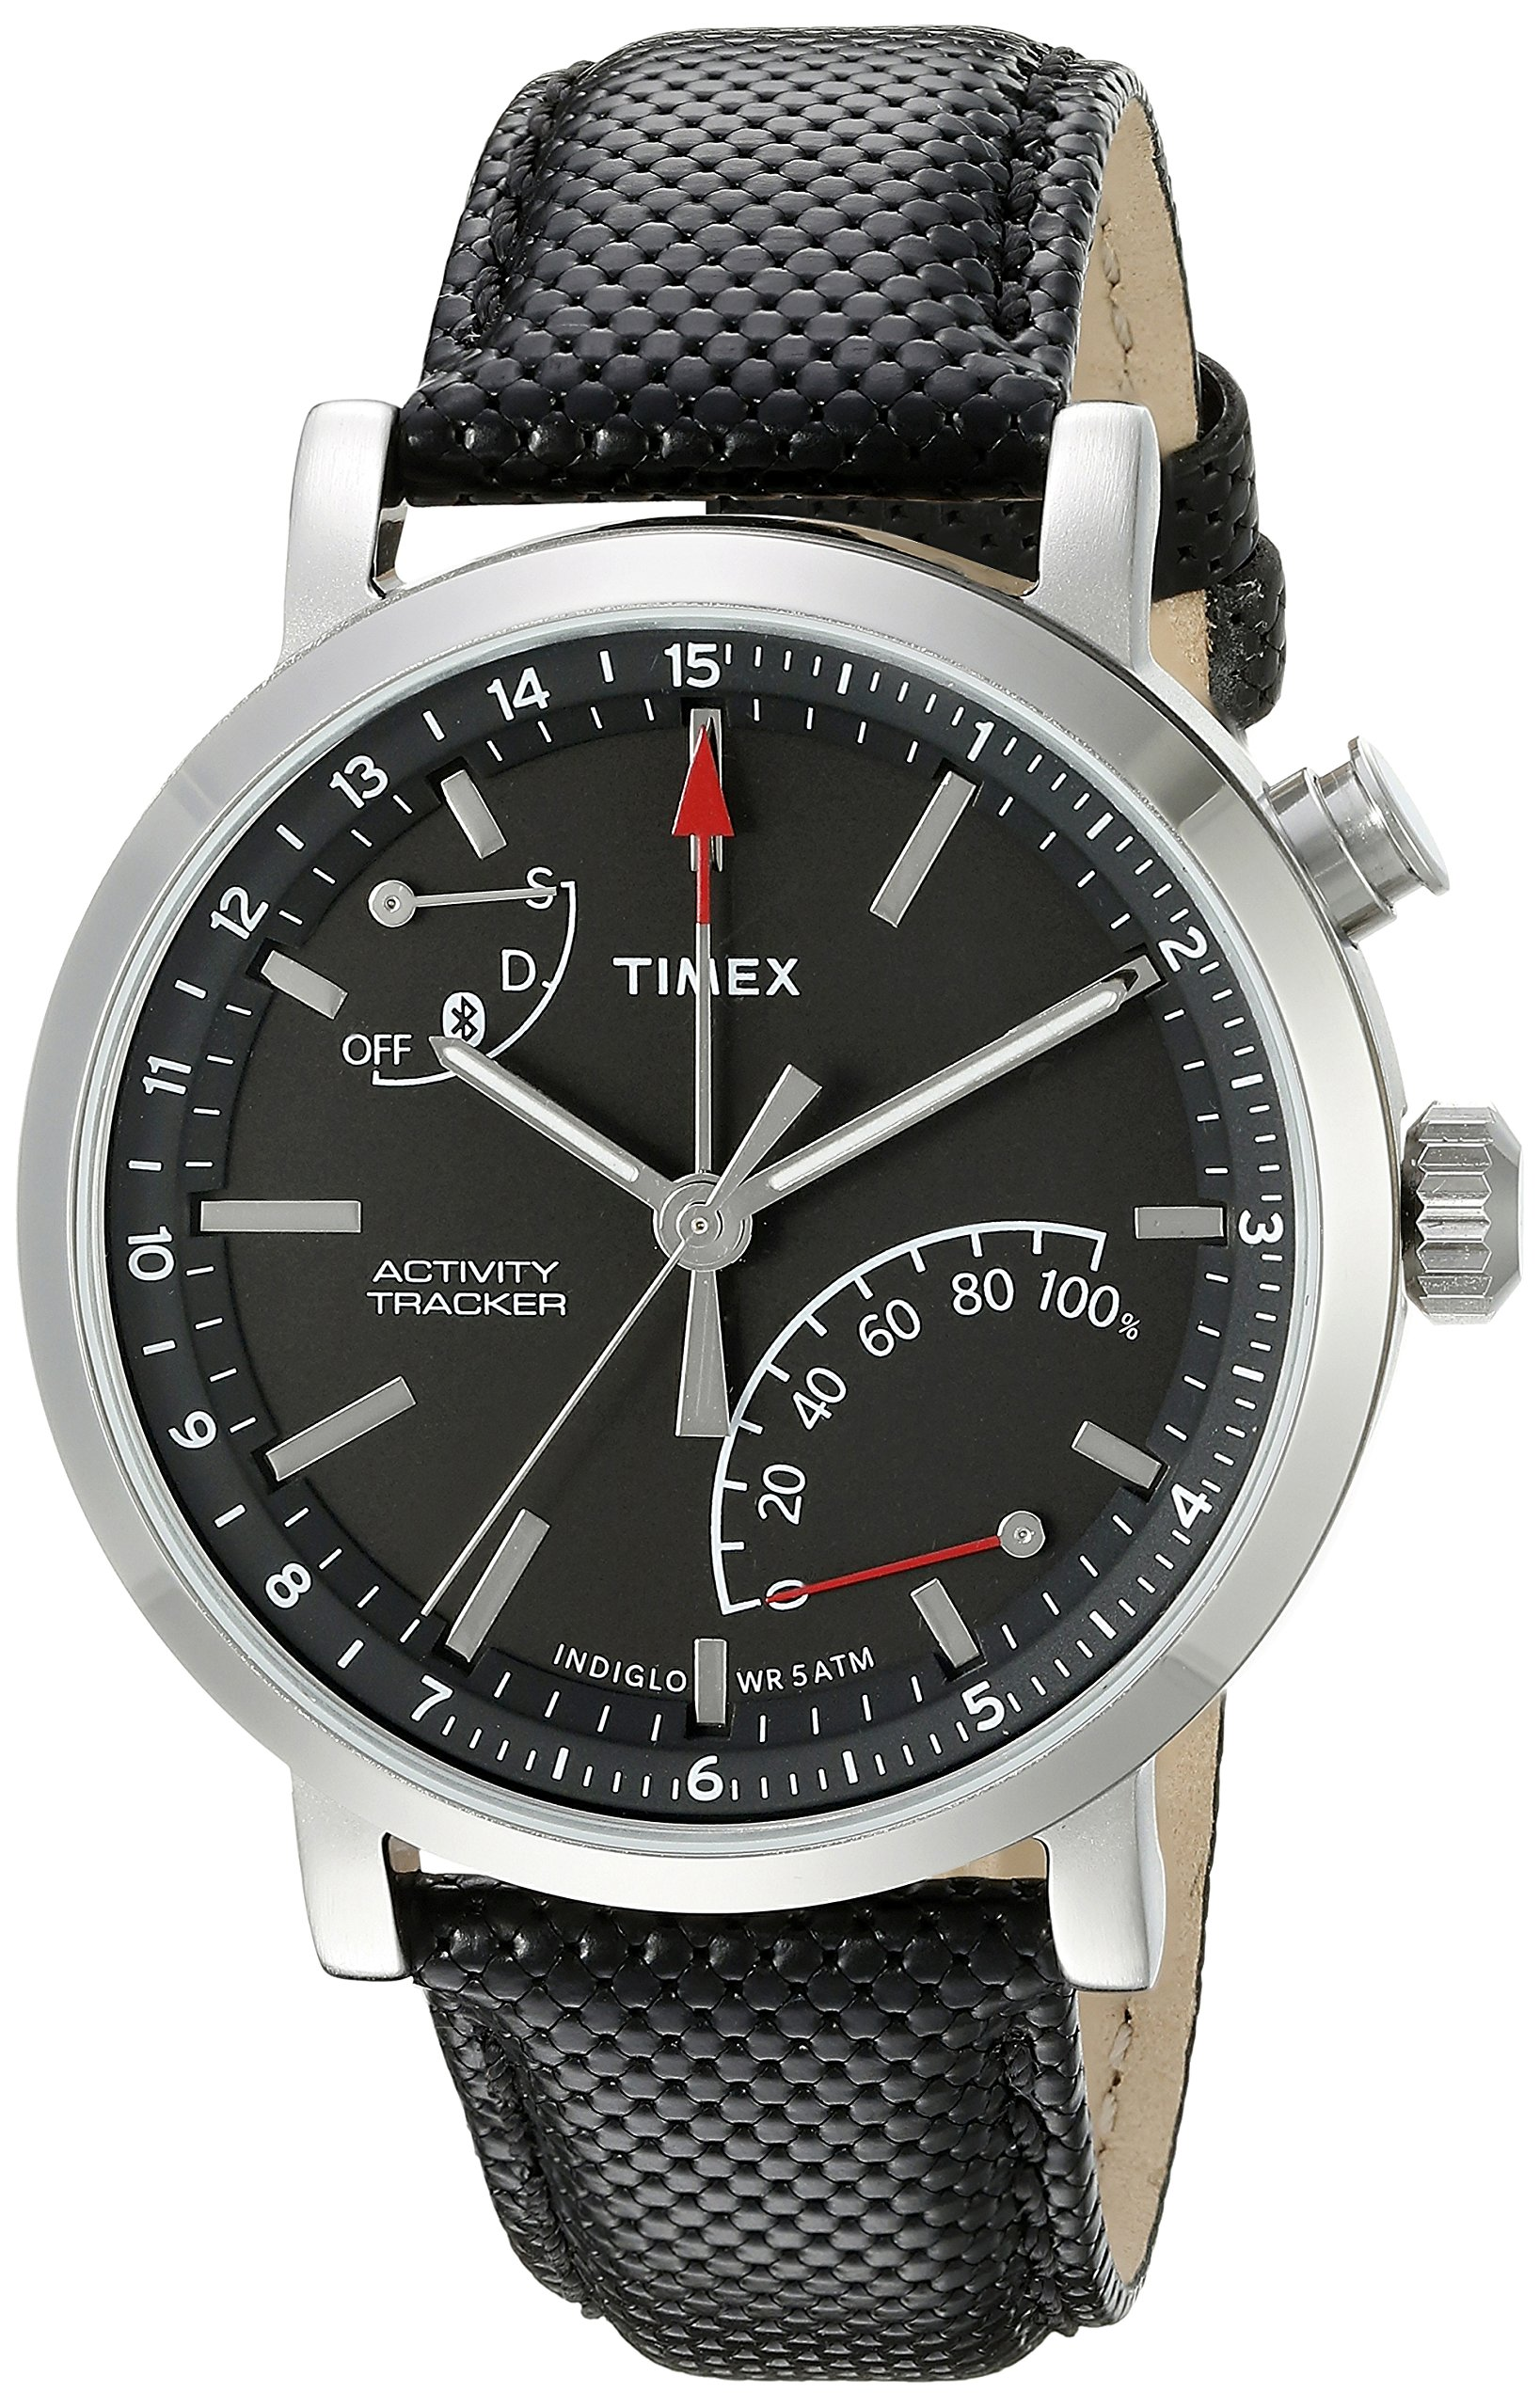 Timex Unisex TW2P81700 Metropolitan+ Activity Tracker Watch with Black Leather Strap